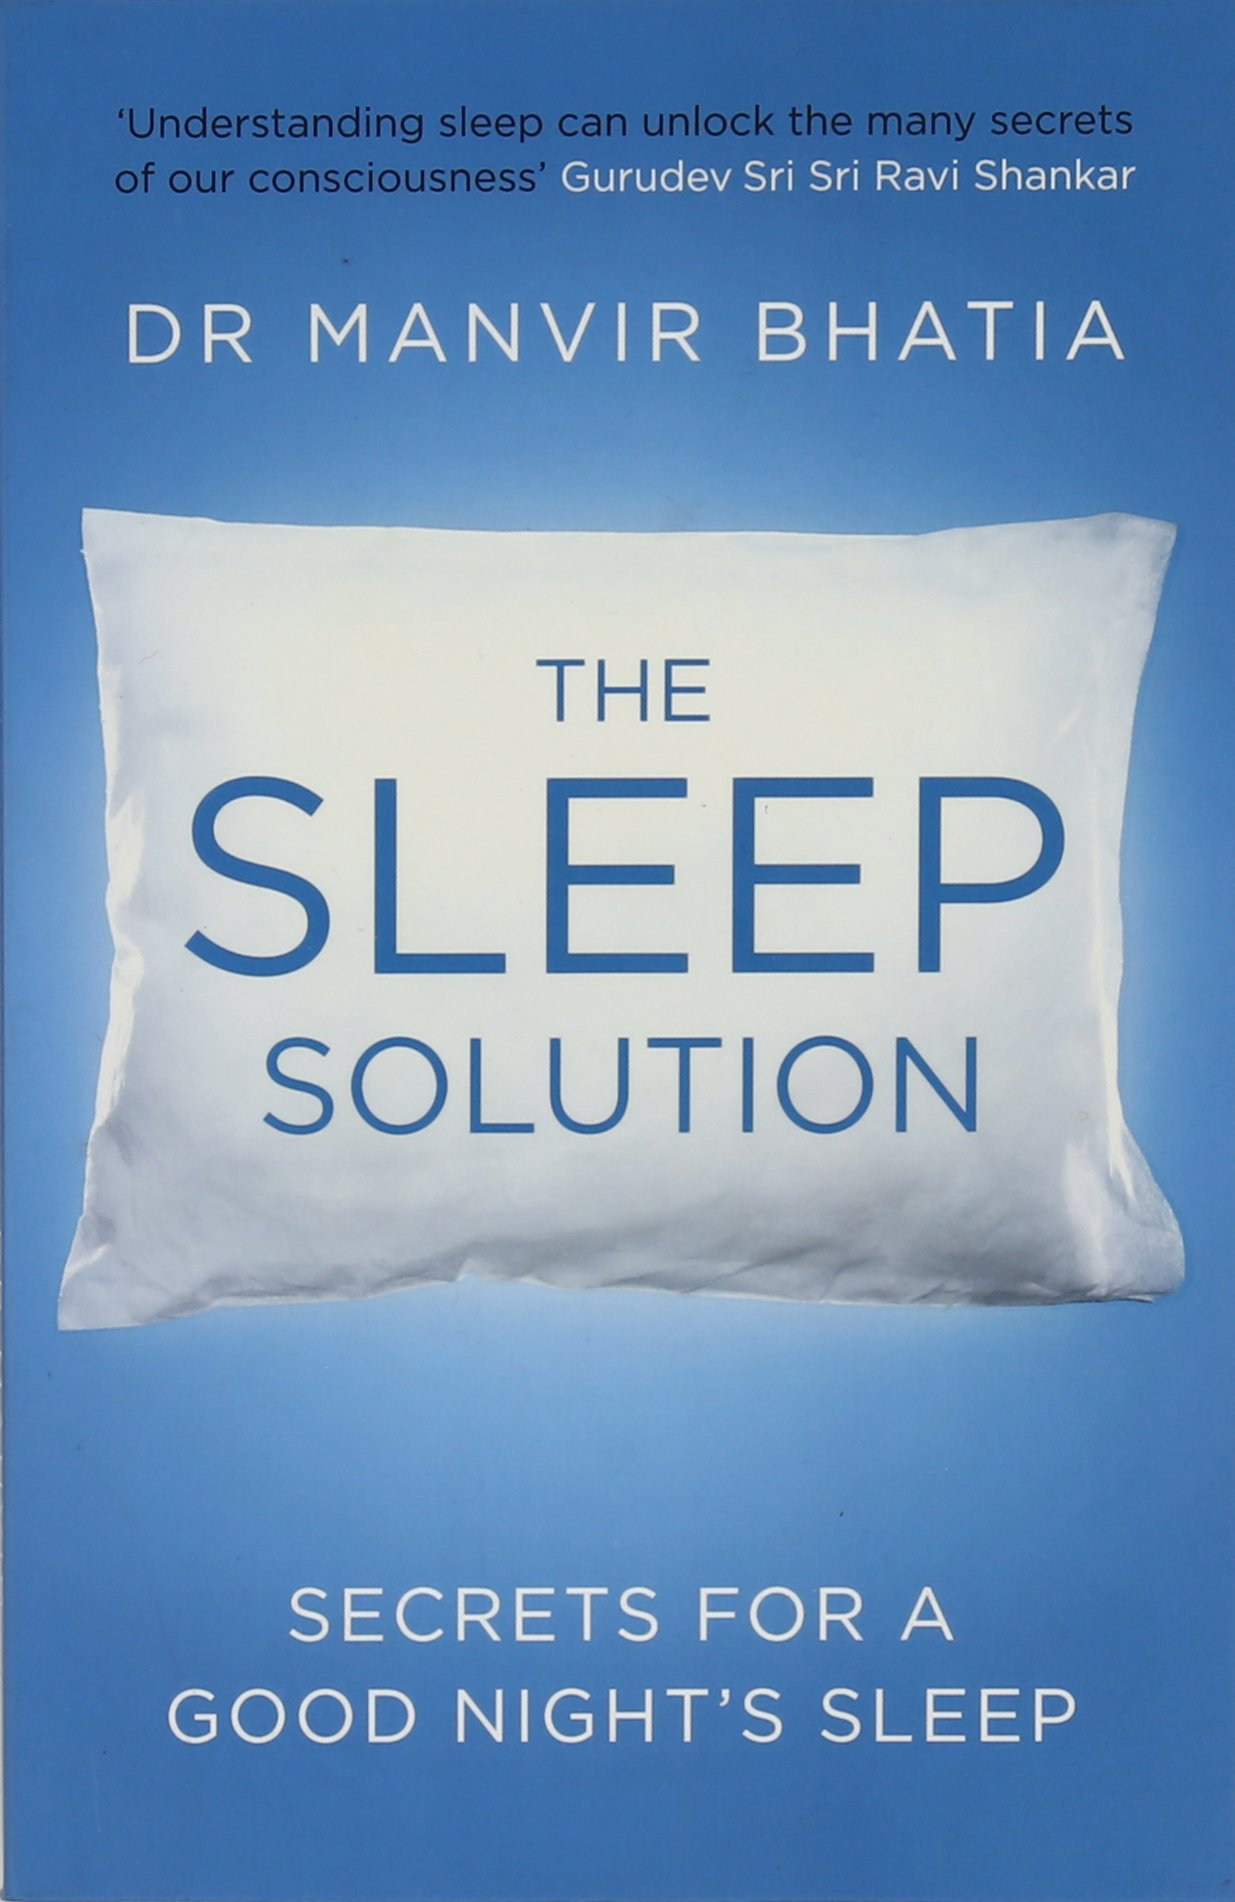 Buy The Sleep Solution: Secrets for a Good Night's Sleep